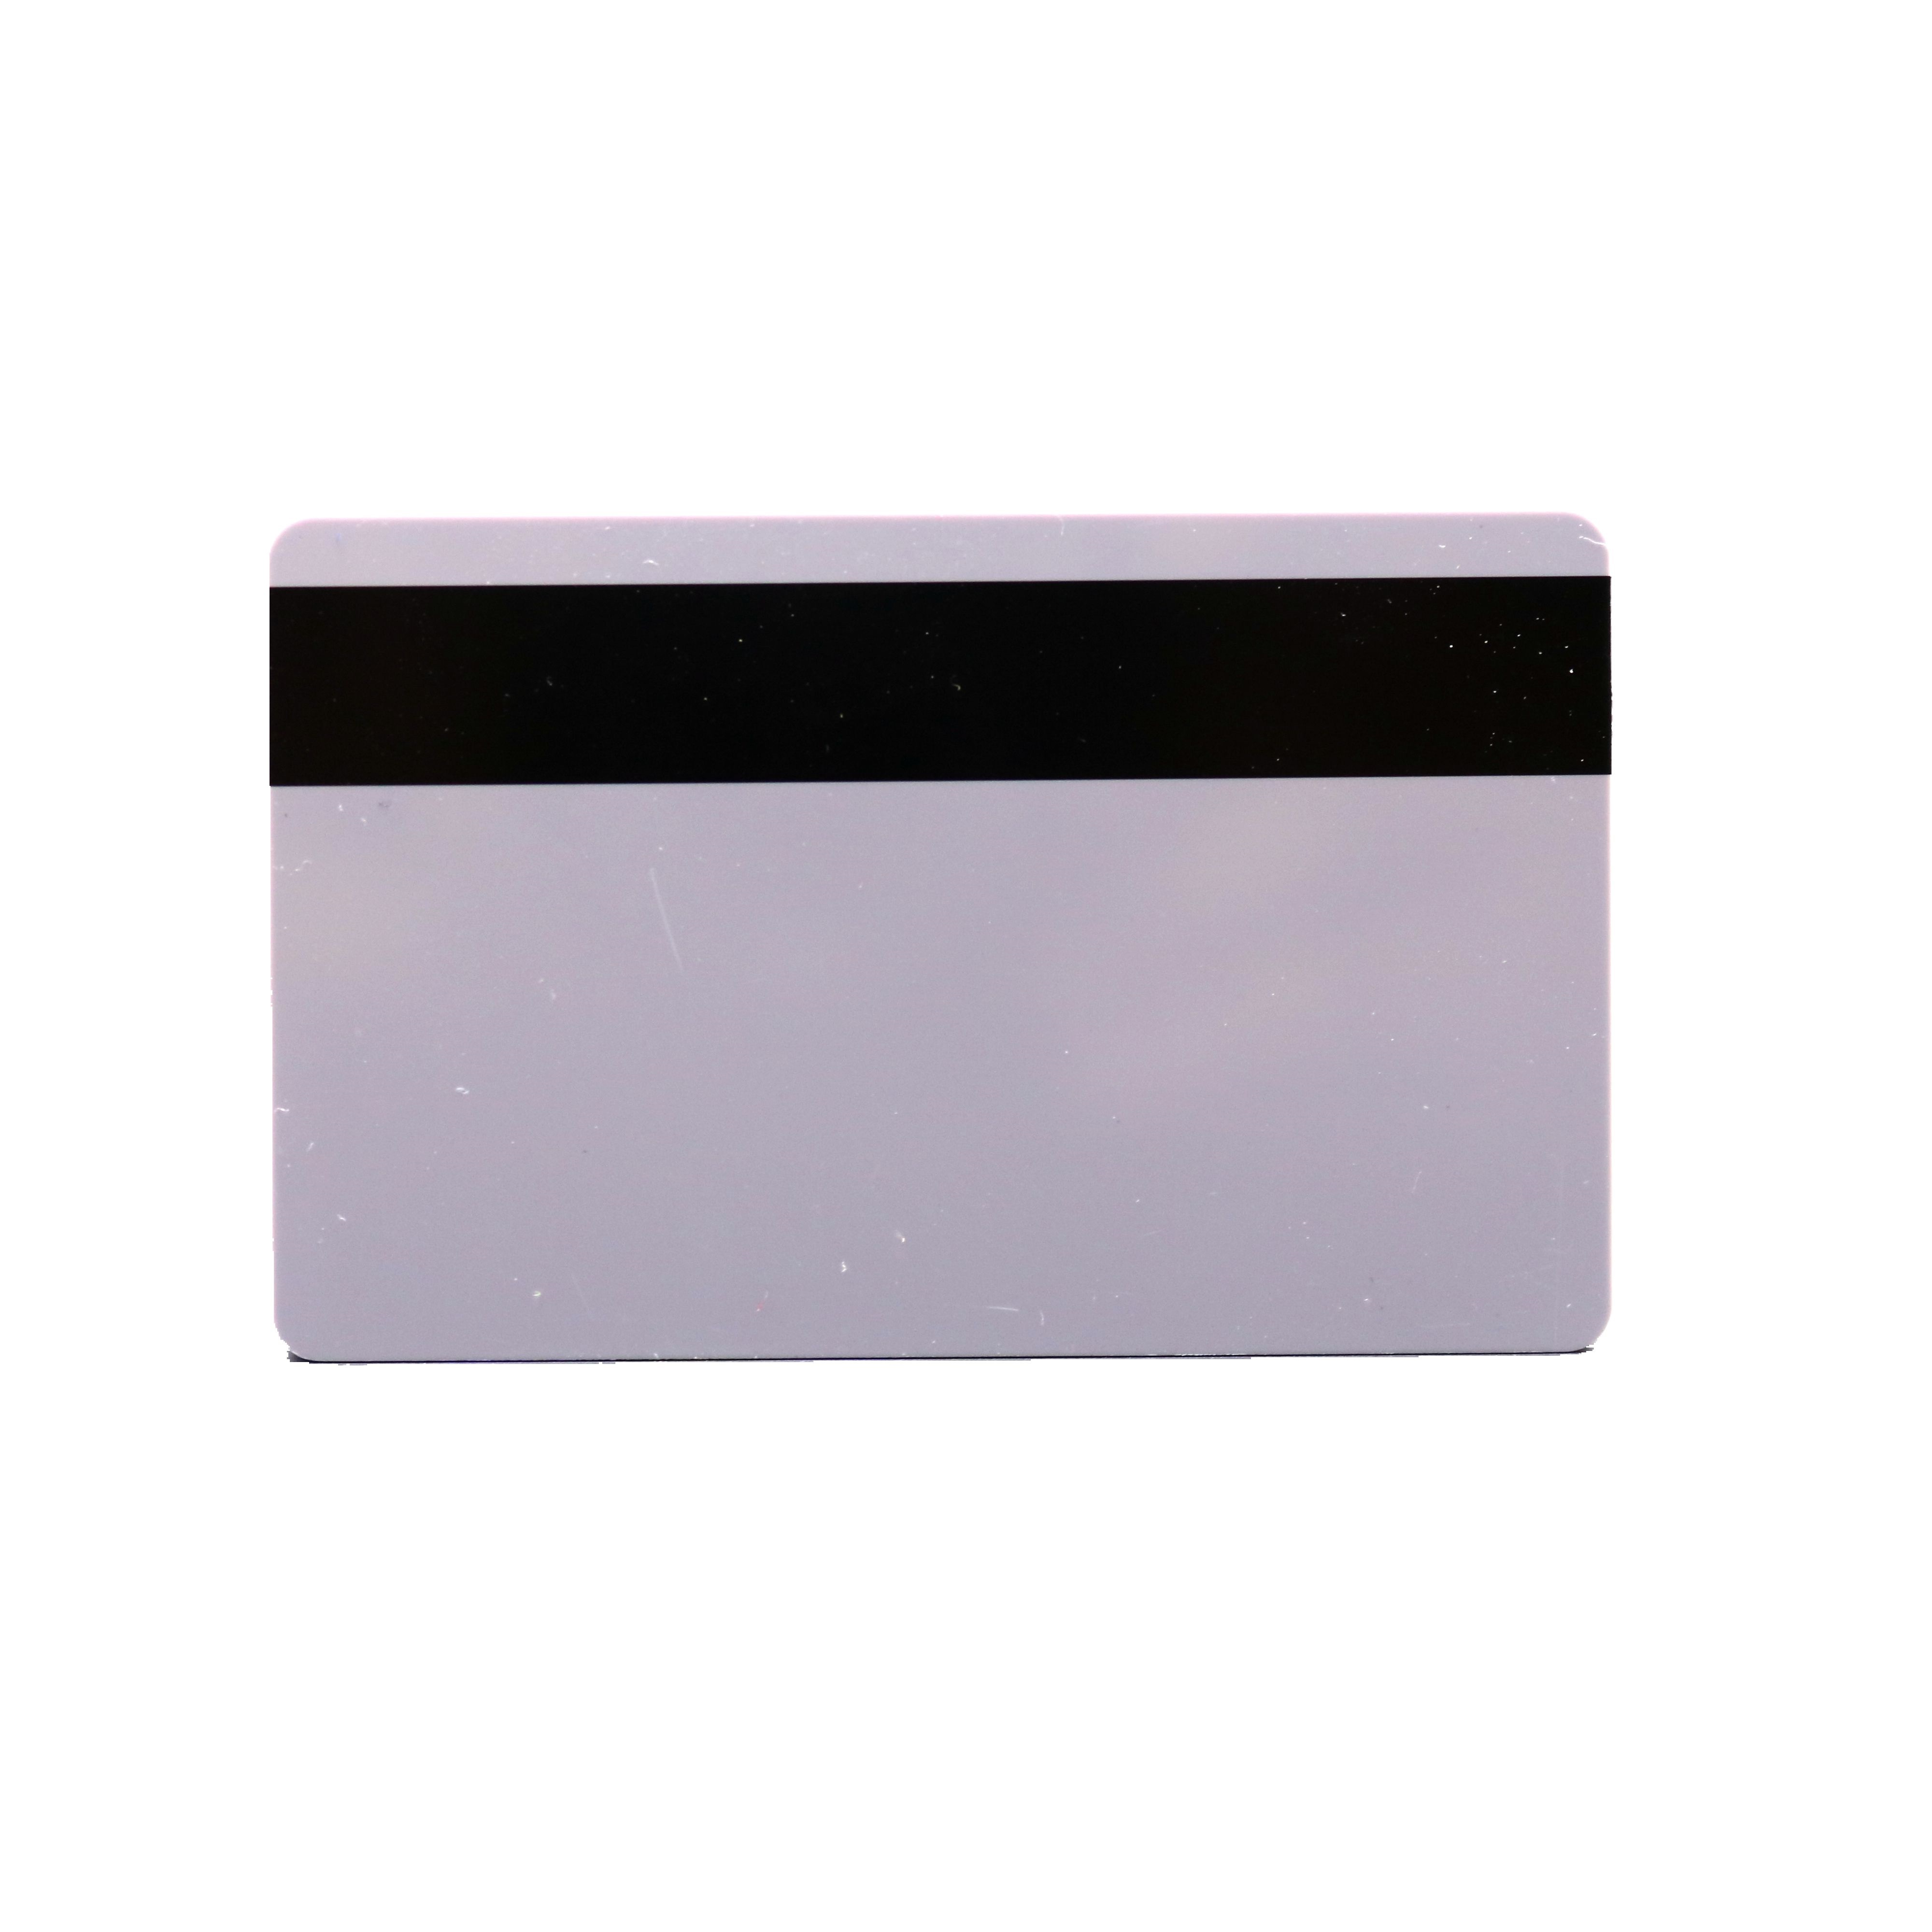 Blank Cr80 ISO PCV 300 OE Low Resistant LoCo HiCo magnetic stripe card